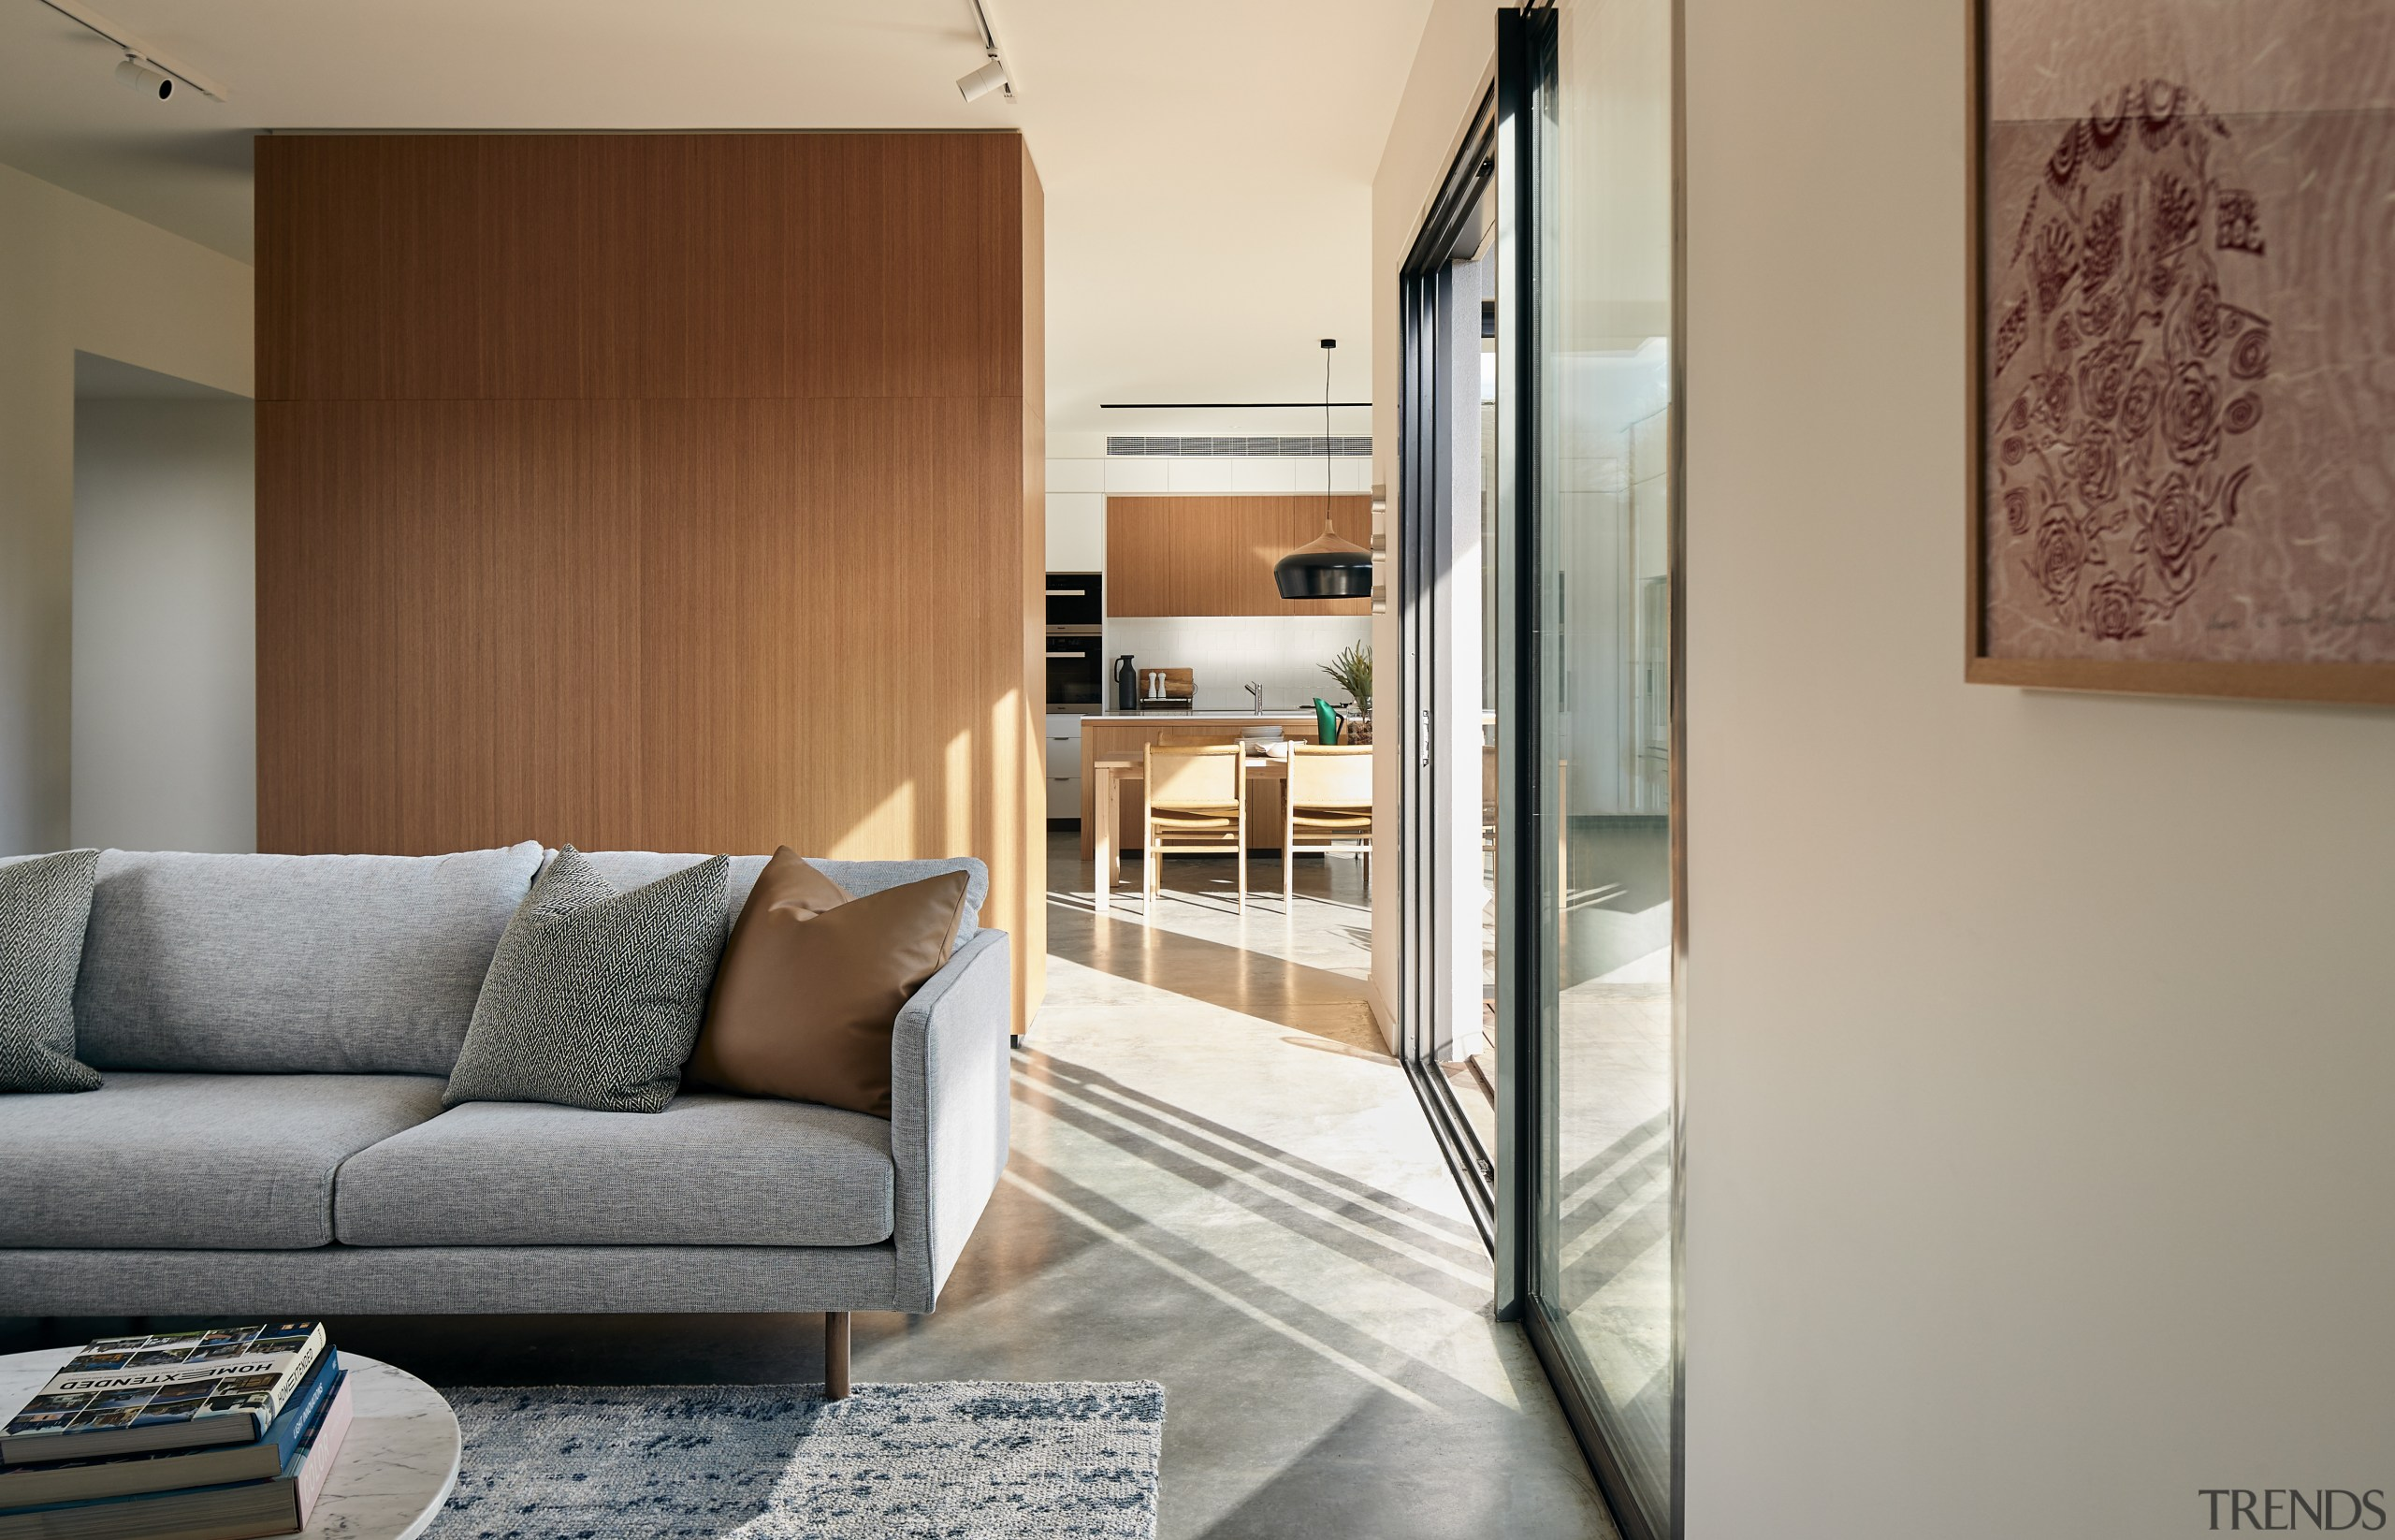 The home has a natural ambience with plenty apartment, architecture, automotive exterior, building, door, floor, furniture, glass, home, home door, house, interior design, living room, property, real estate, room, sliding door, table, vehicle door, wall, gray, brown